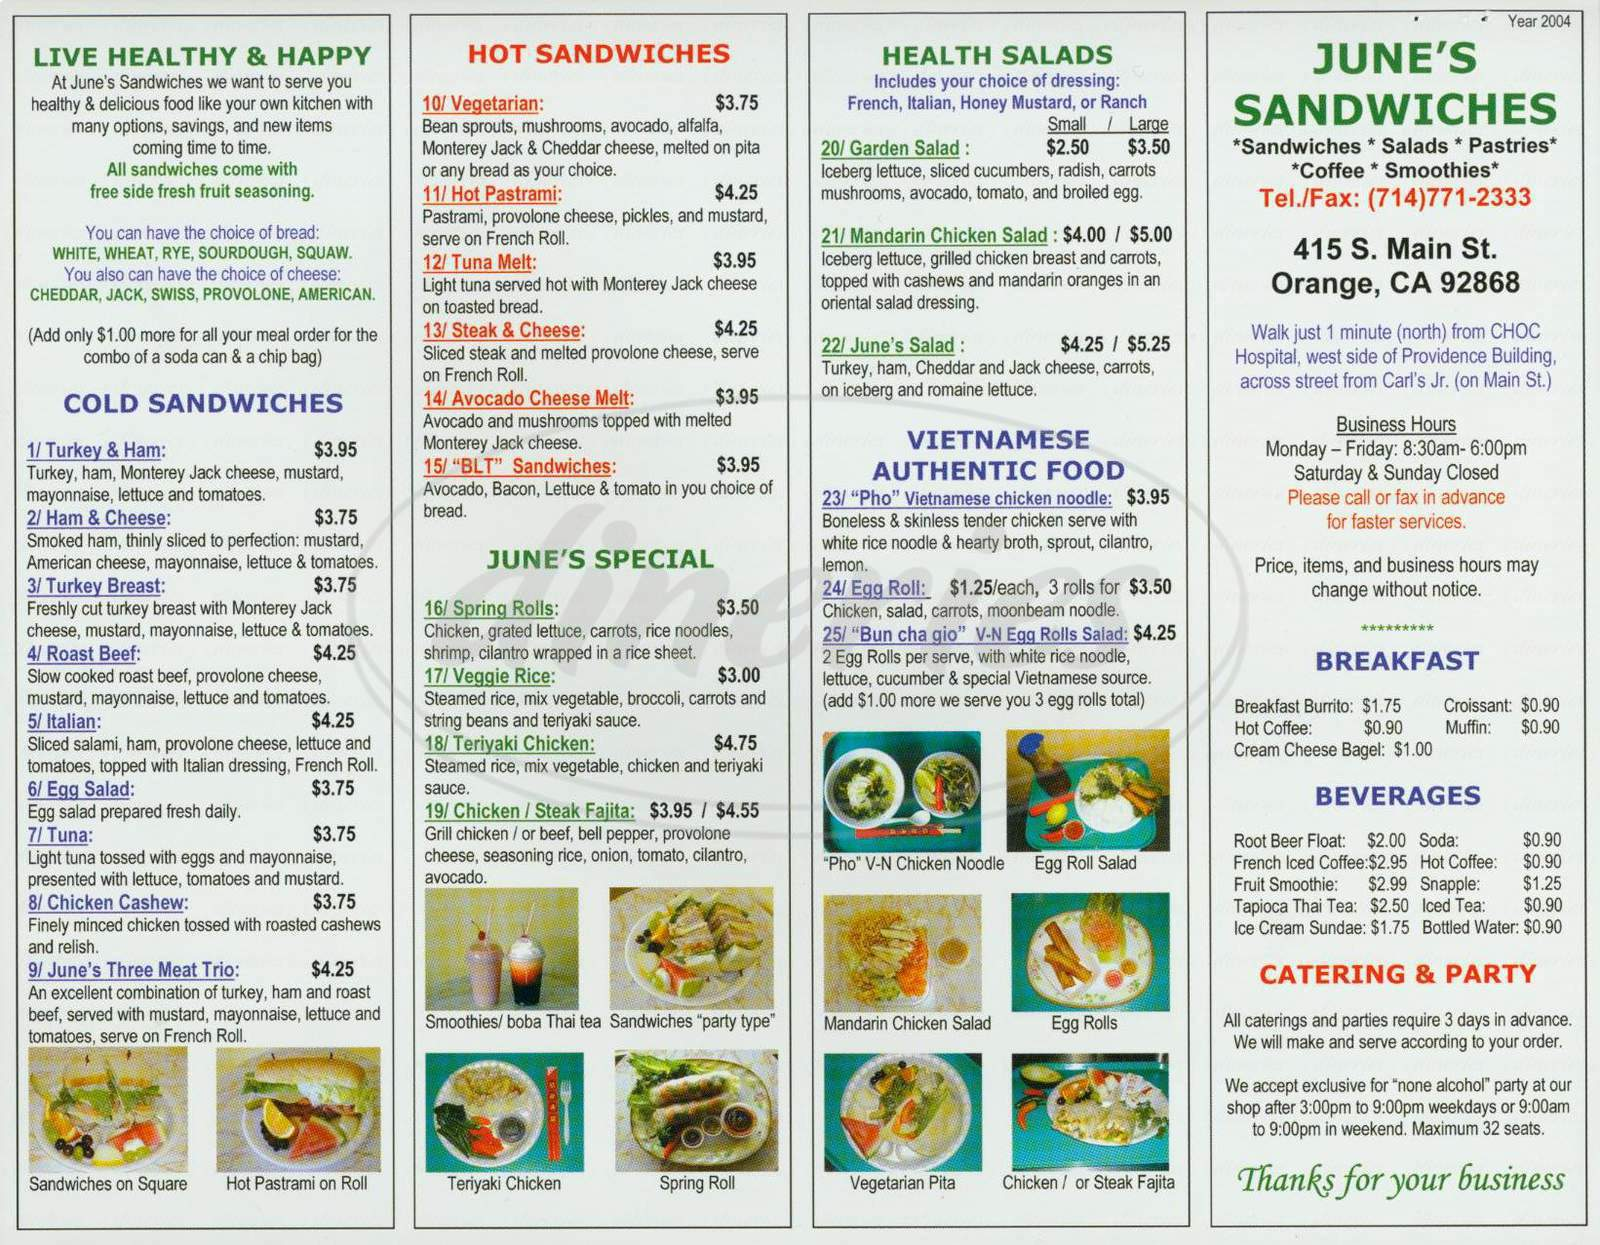 menu for June's Sandwiches